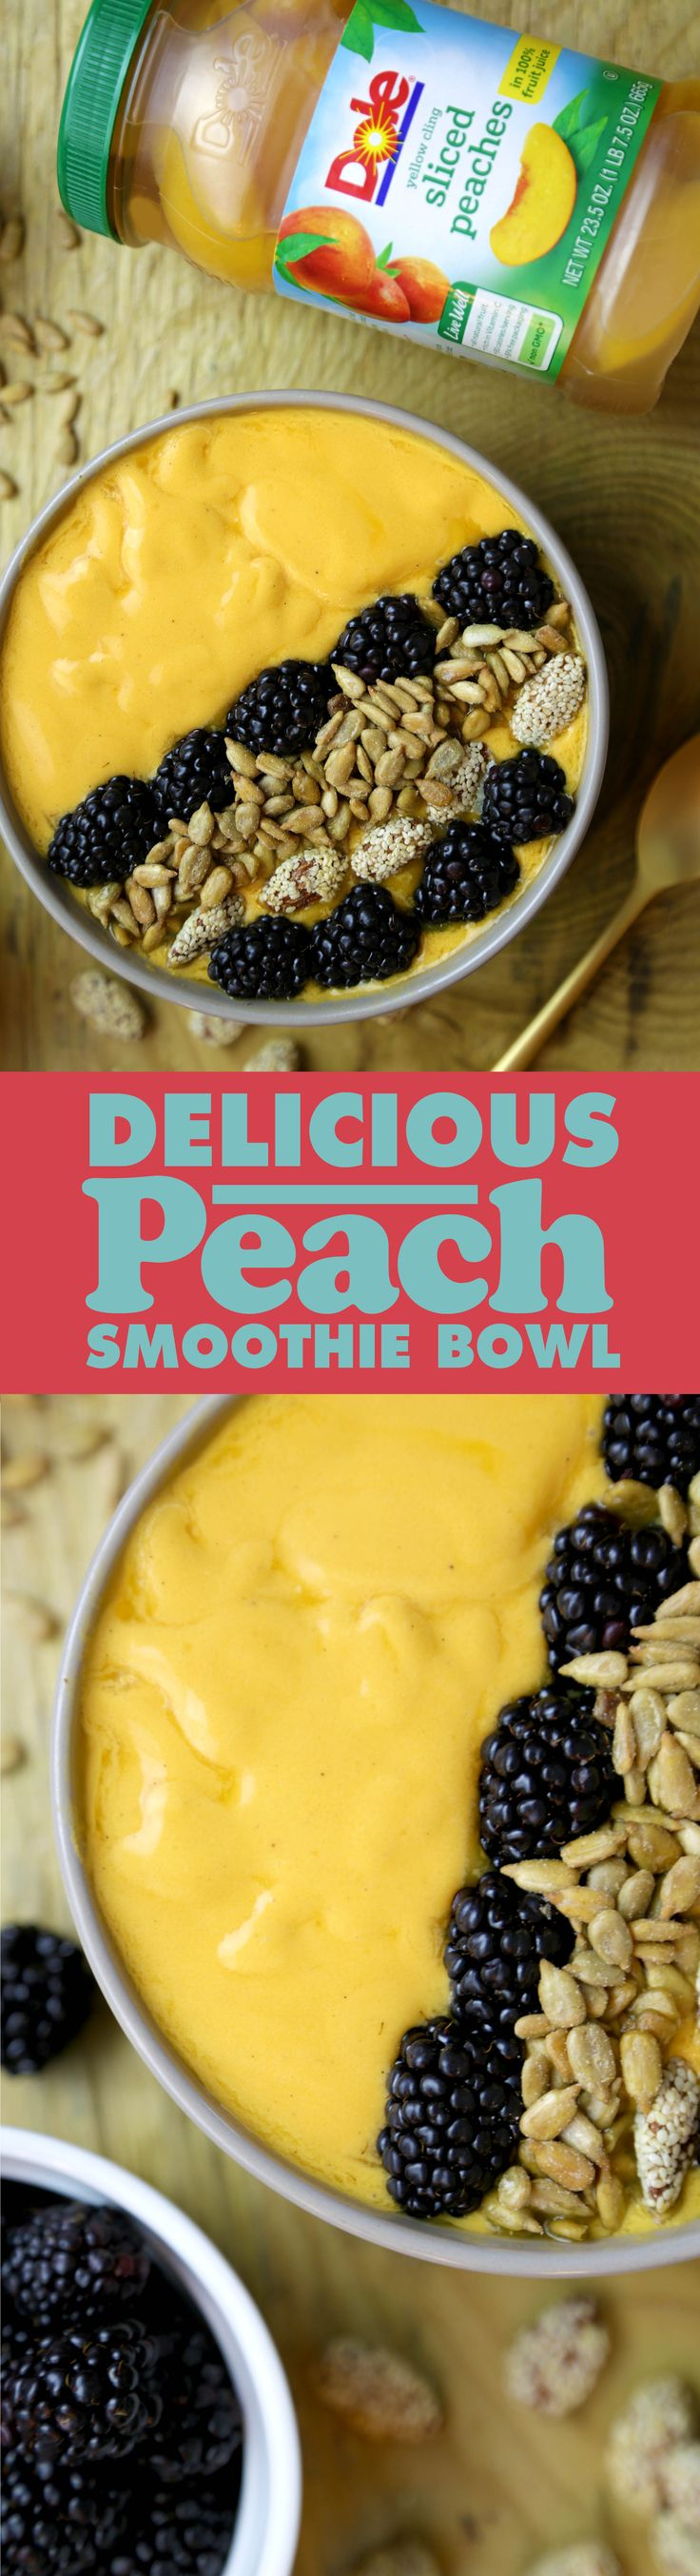 Blend your DOLE® Jarred Sliced Peaches with ice cubes and yogurt to make a tasty Peach Smoothie Bowl. Add your favorite toppings!